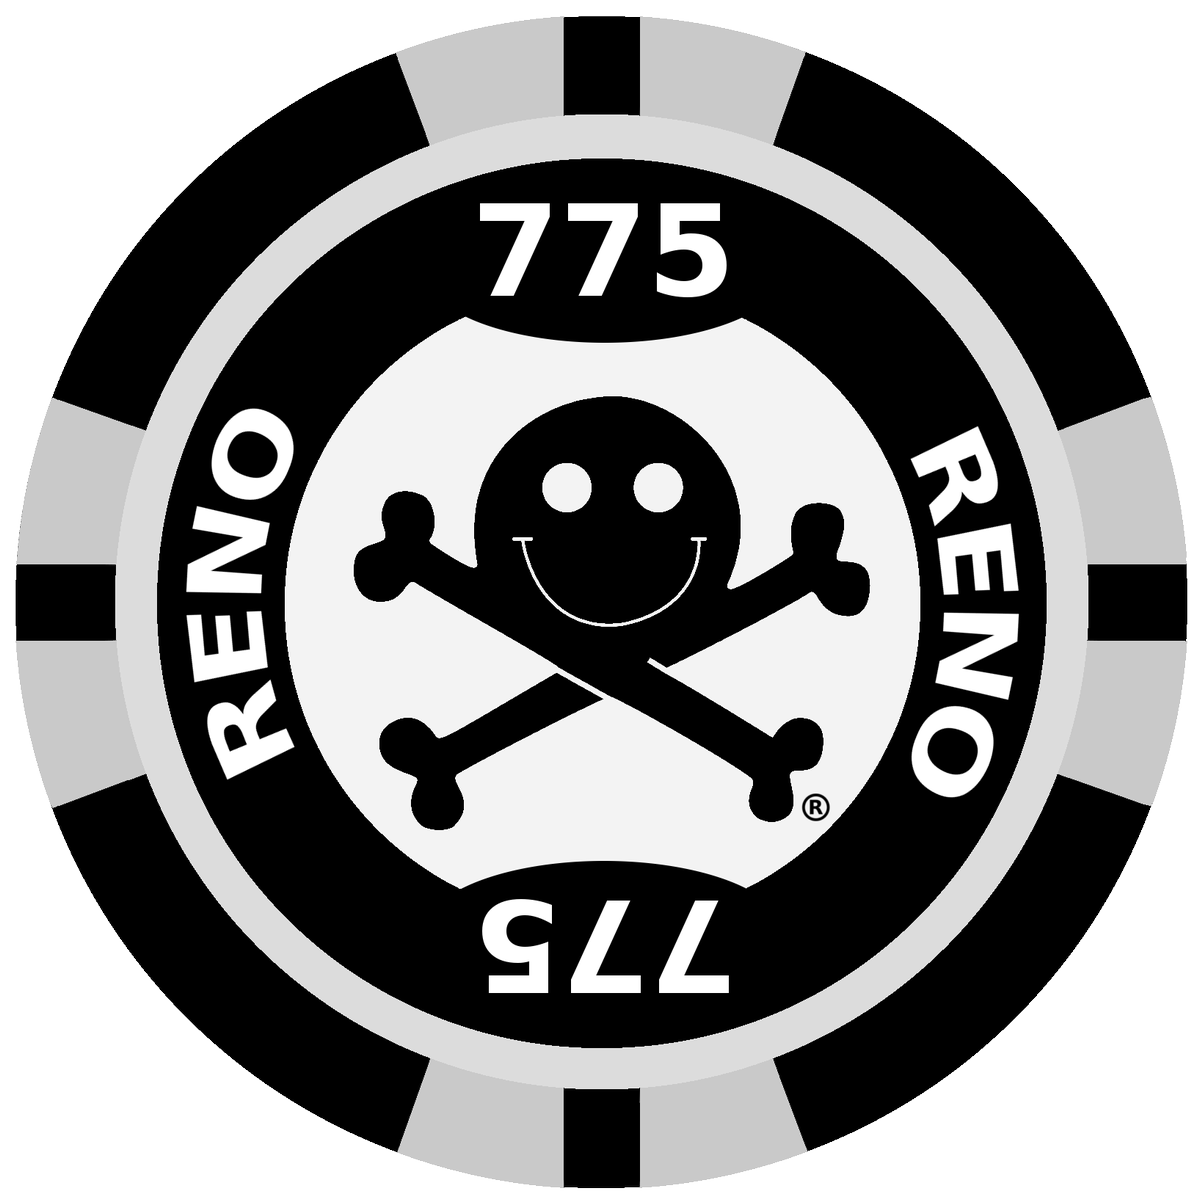 Dc775 on twitter hey defcon check out our rad poker chip of a 0 replies 0 retweets 1 like buycottarizona